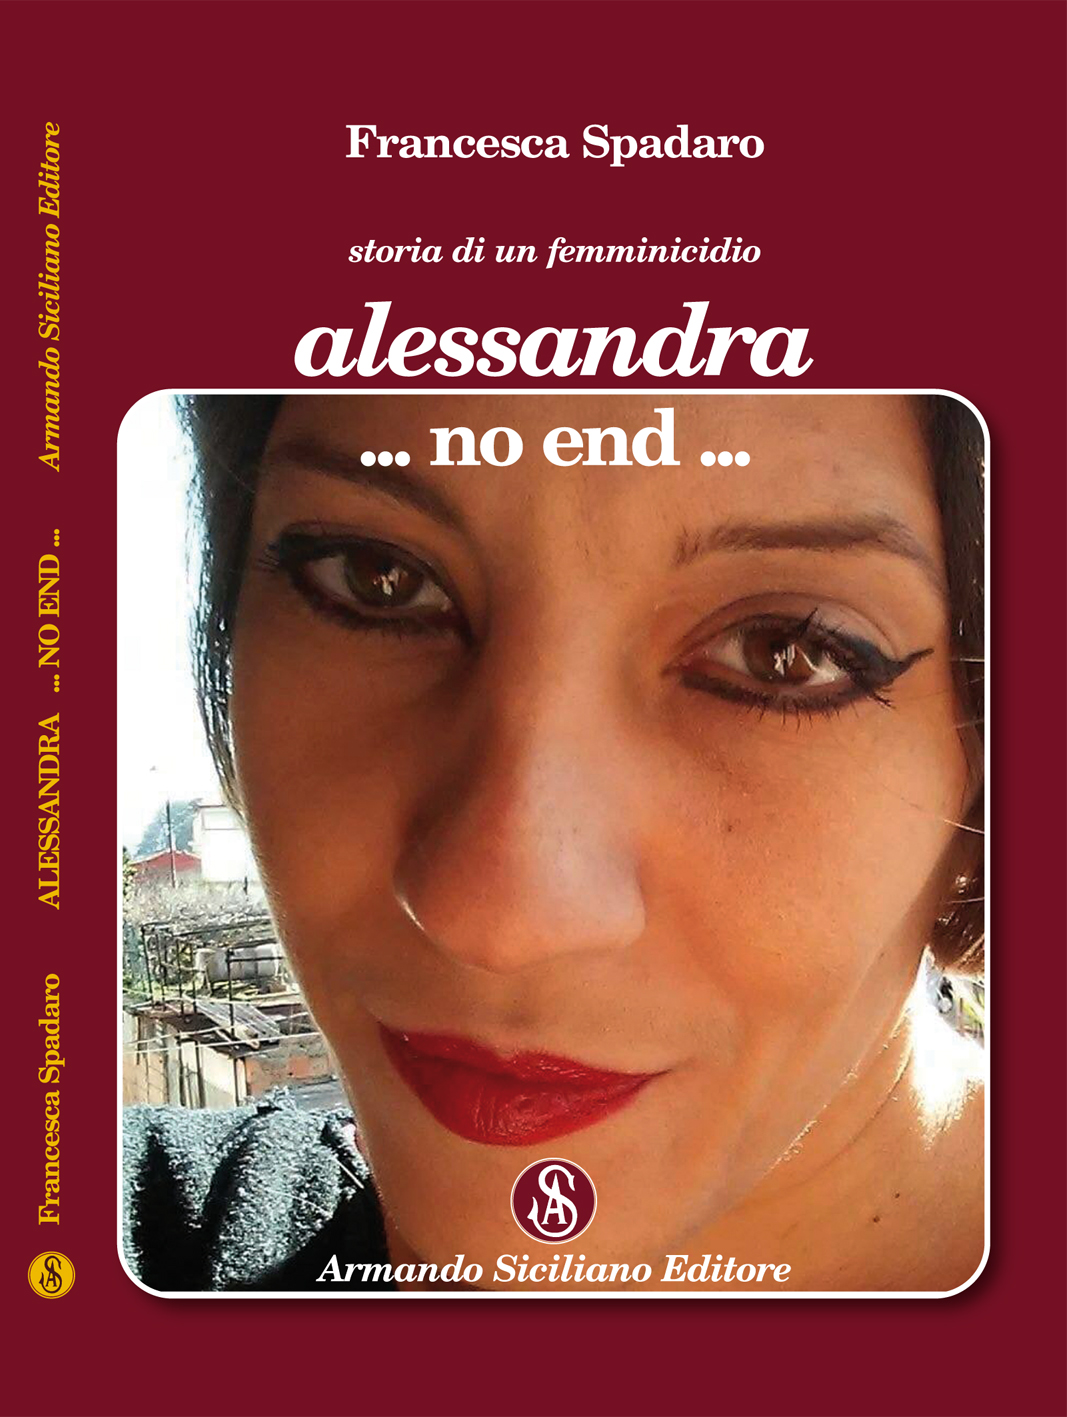 Storia di un femminicidio. Alessandra ... no end ...